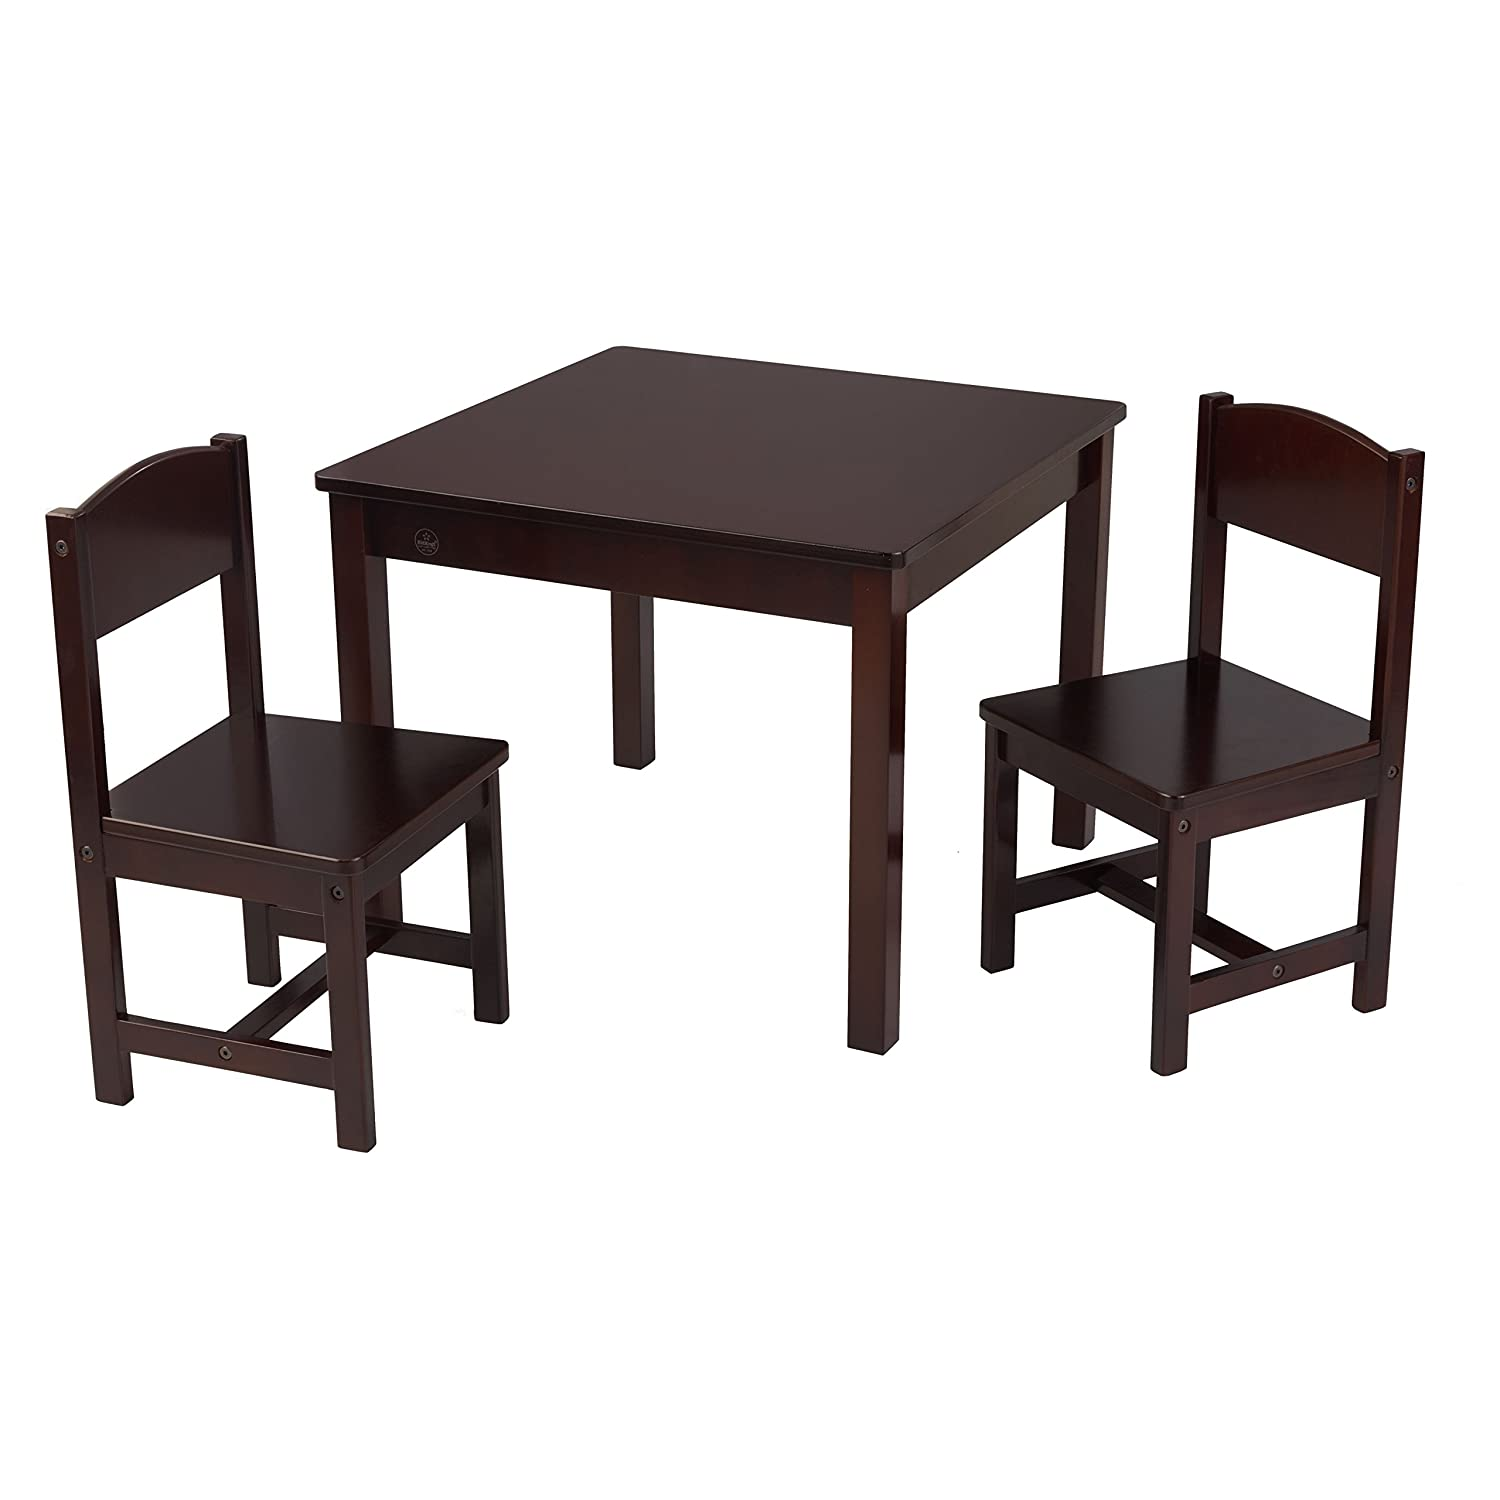 KidKraft Aspen Table & 2 Chairs Table & Chair KIDKRAFT (DropShip) 21203